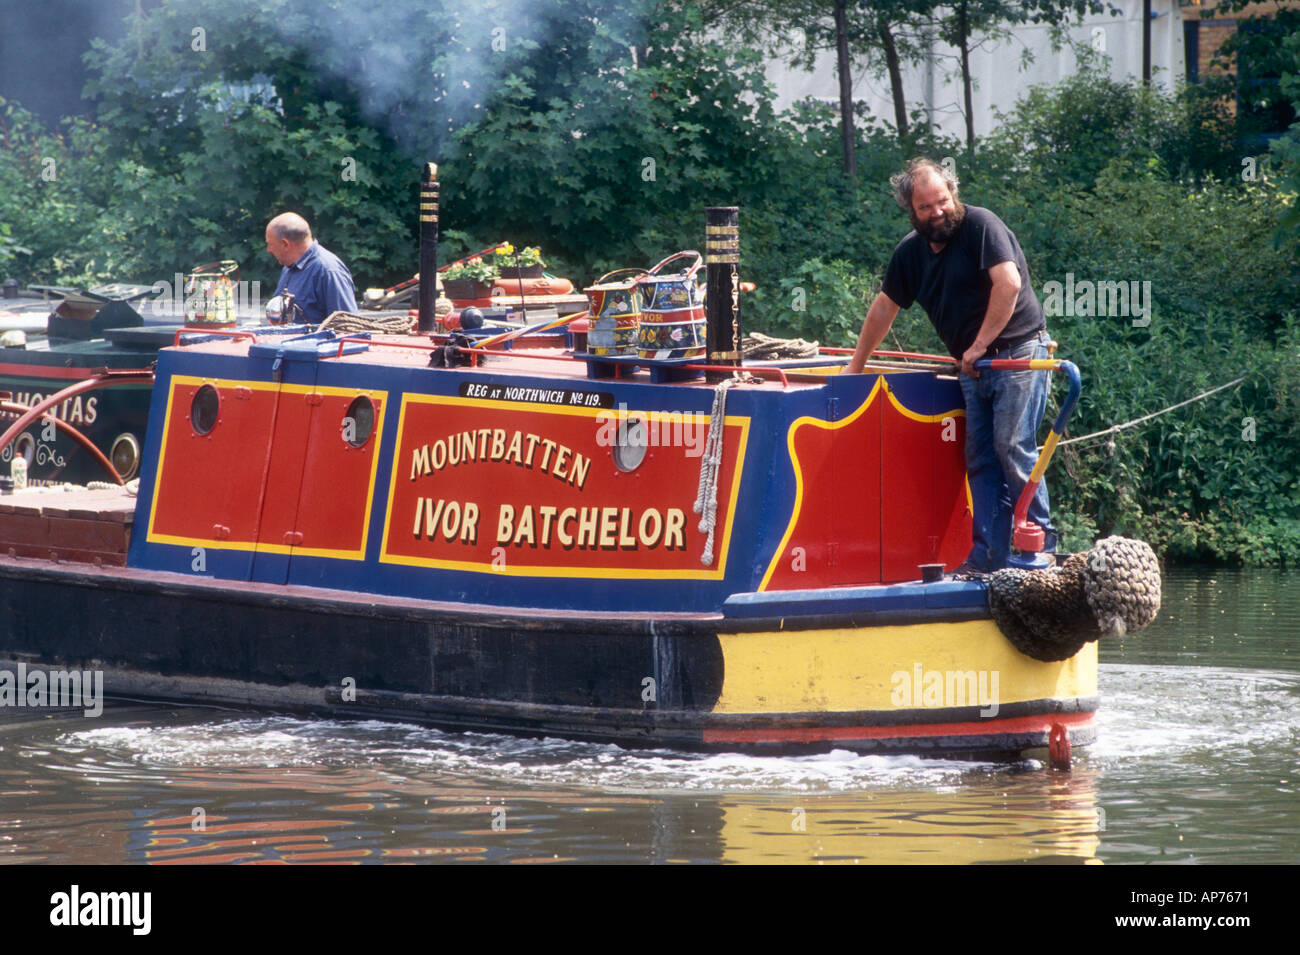 Ivor Batchelors ex FMC Admiralty Class motor narrowboat Mountbatten on the Grand Union Canal at Batchworth in Hertfordshire - Stock Image